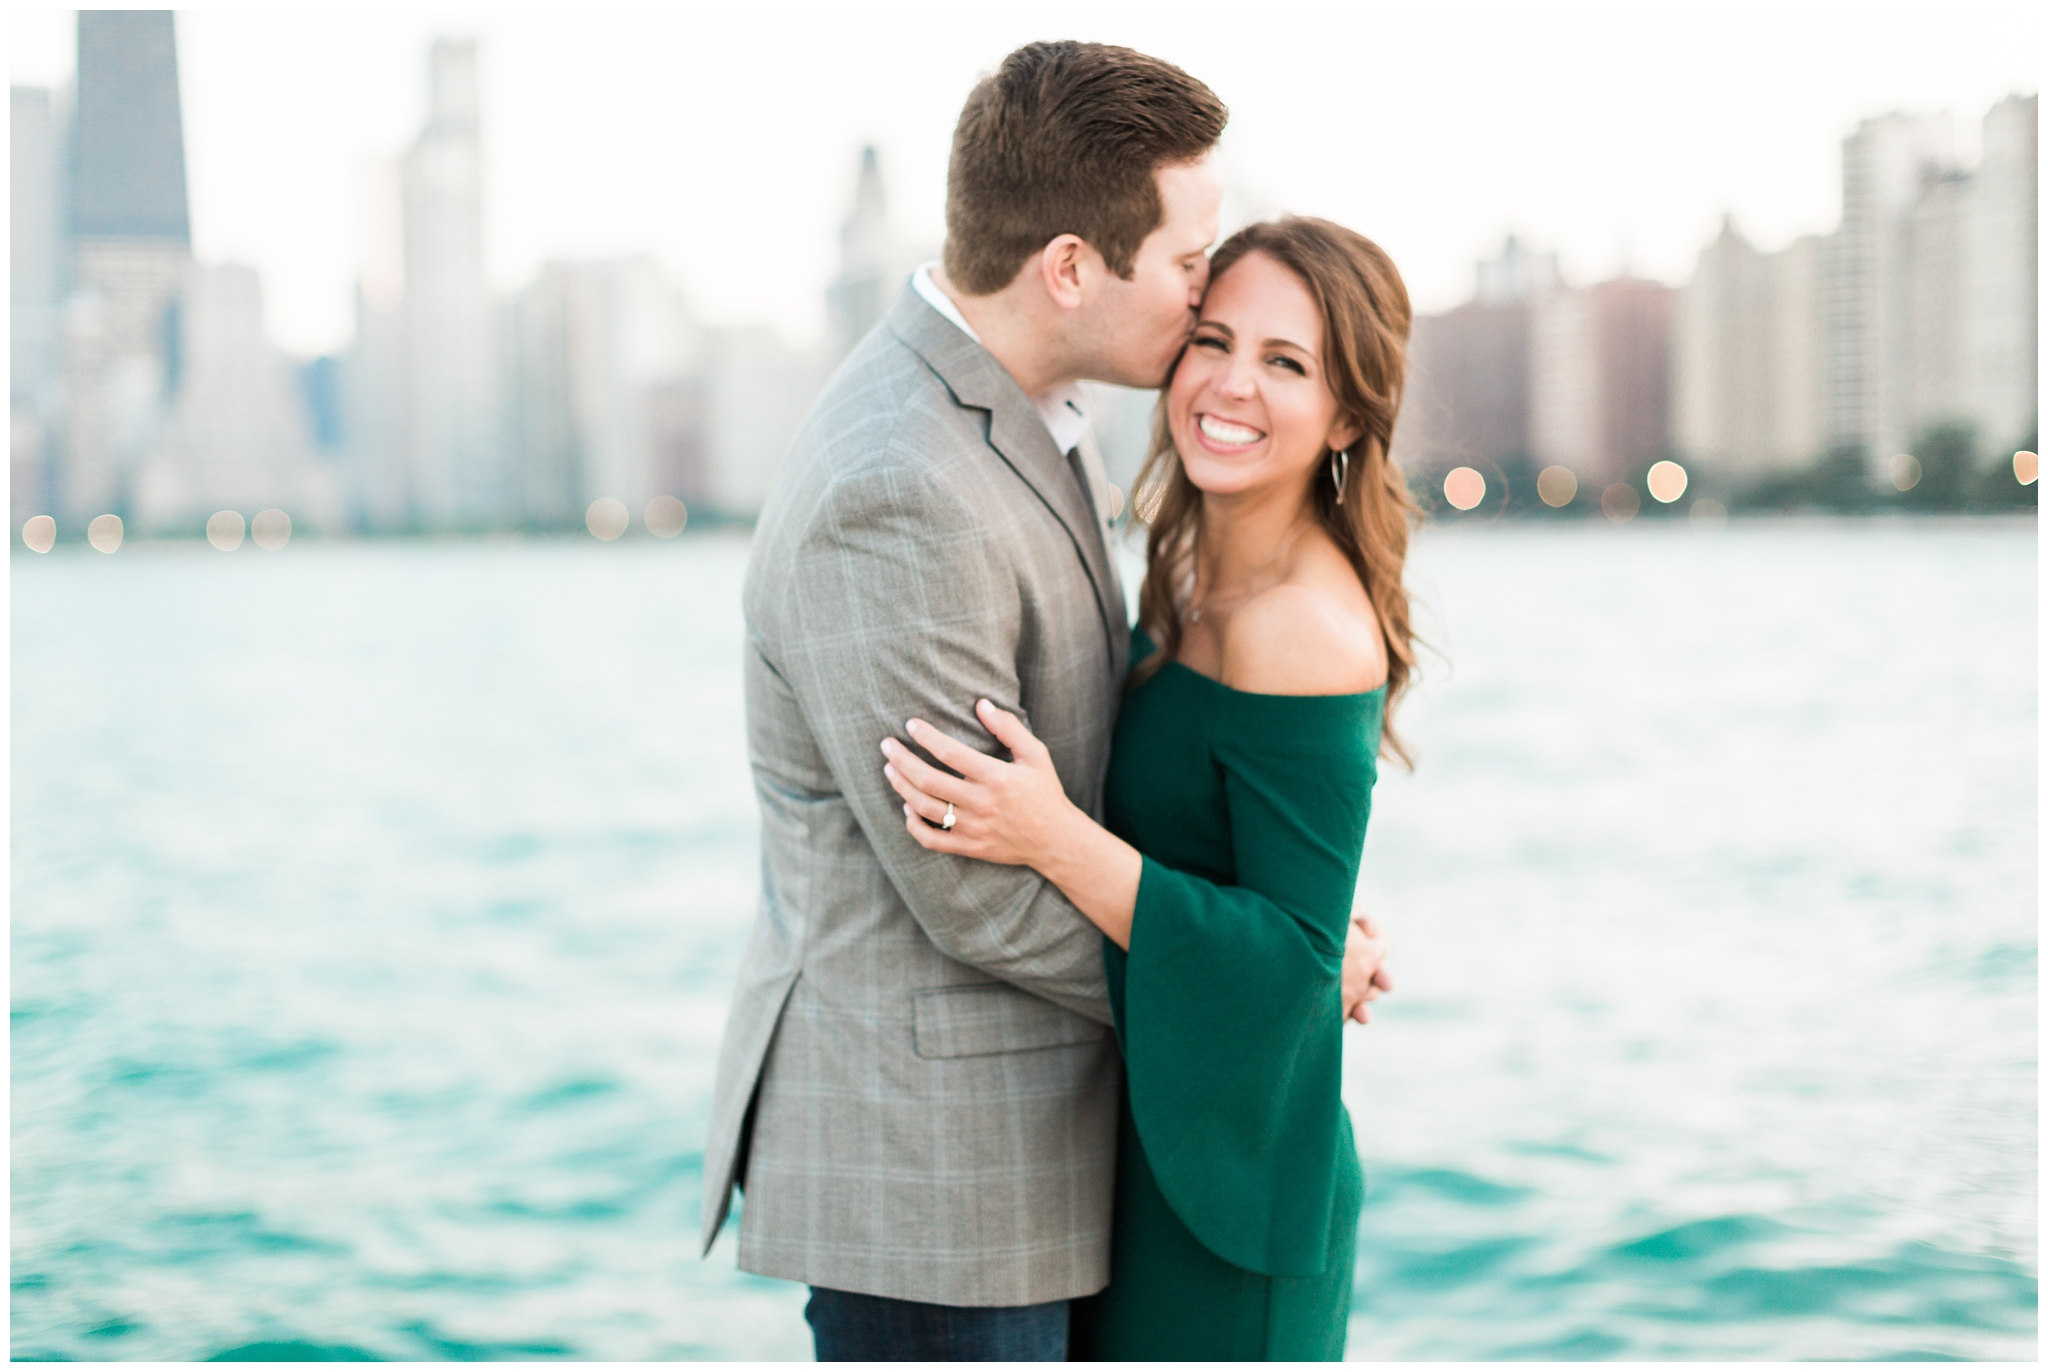 chicagoengagementsession_northavebeachengagementsession_northavebeach_northavenuebeach_northavenuebeachengagementsession_chicagoriverwalk_chicagoriverwalkengagementsession_0015.jpg